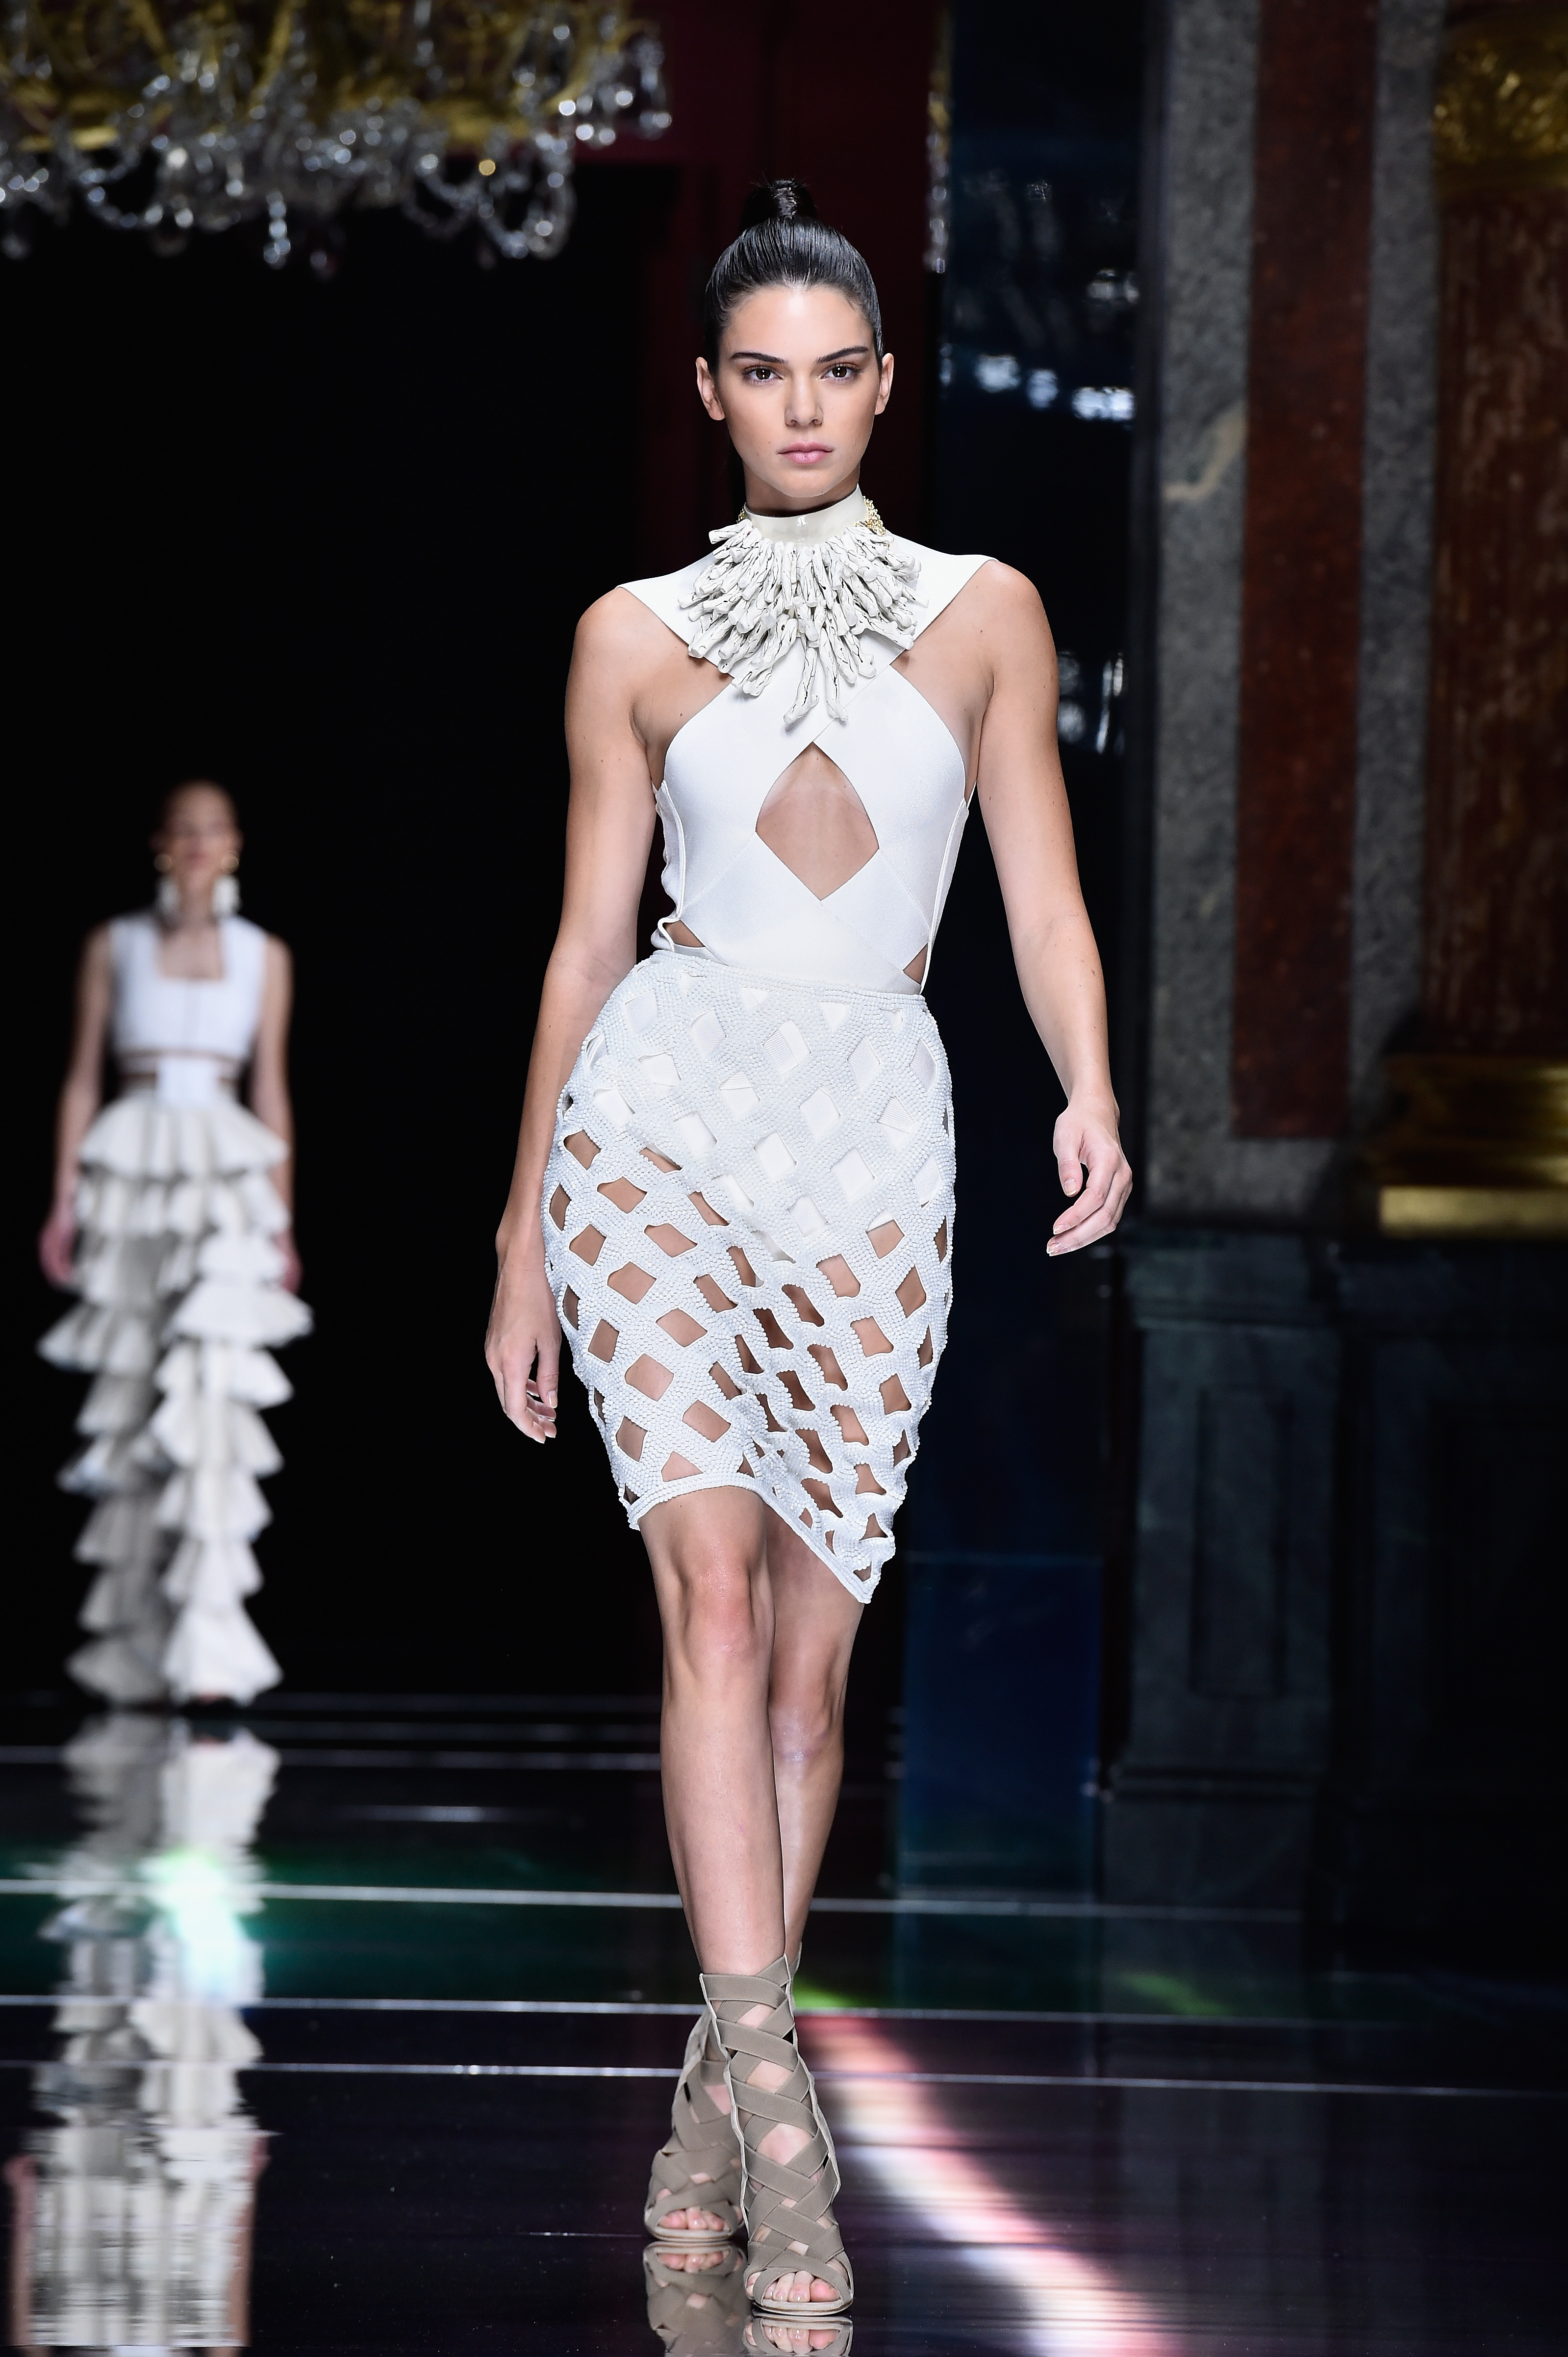 331130a1cb737 Kendall Jenner s Best Fashion Looks  See 20 Of Her Greatest Runway ...